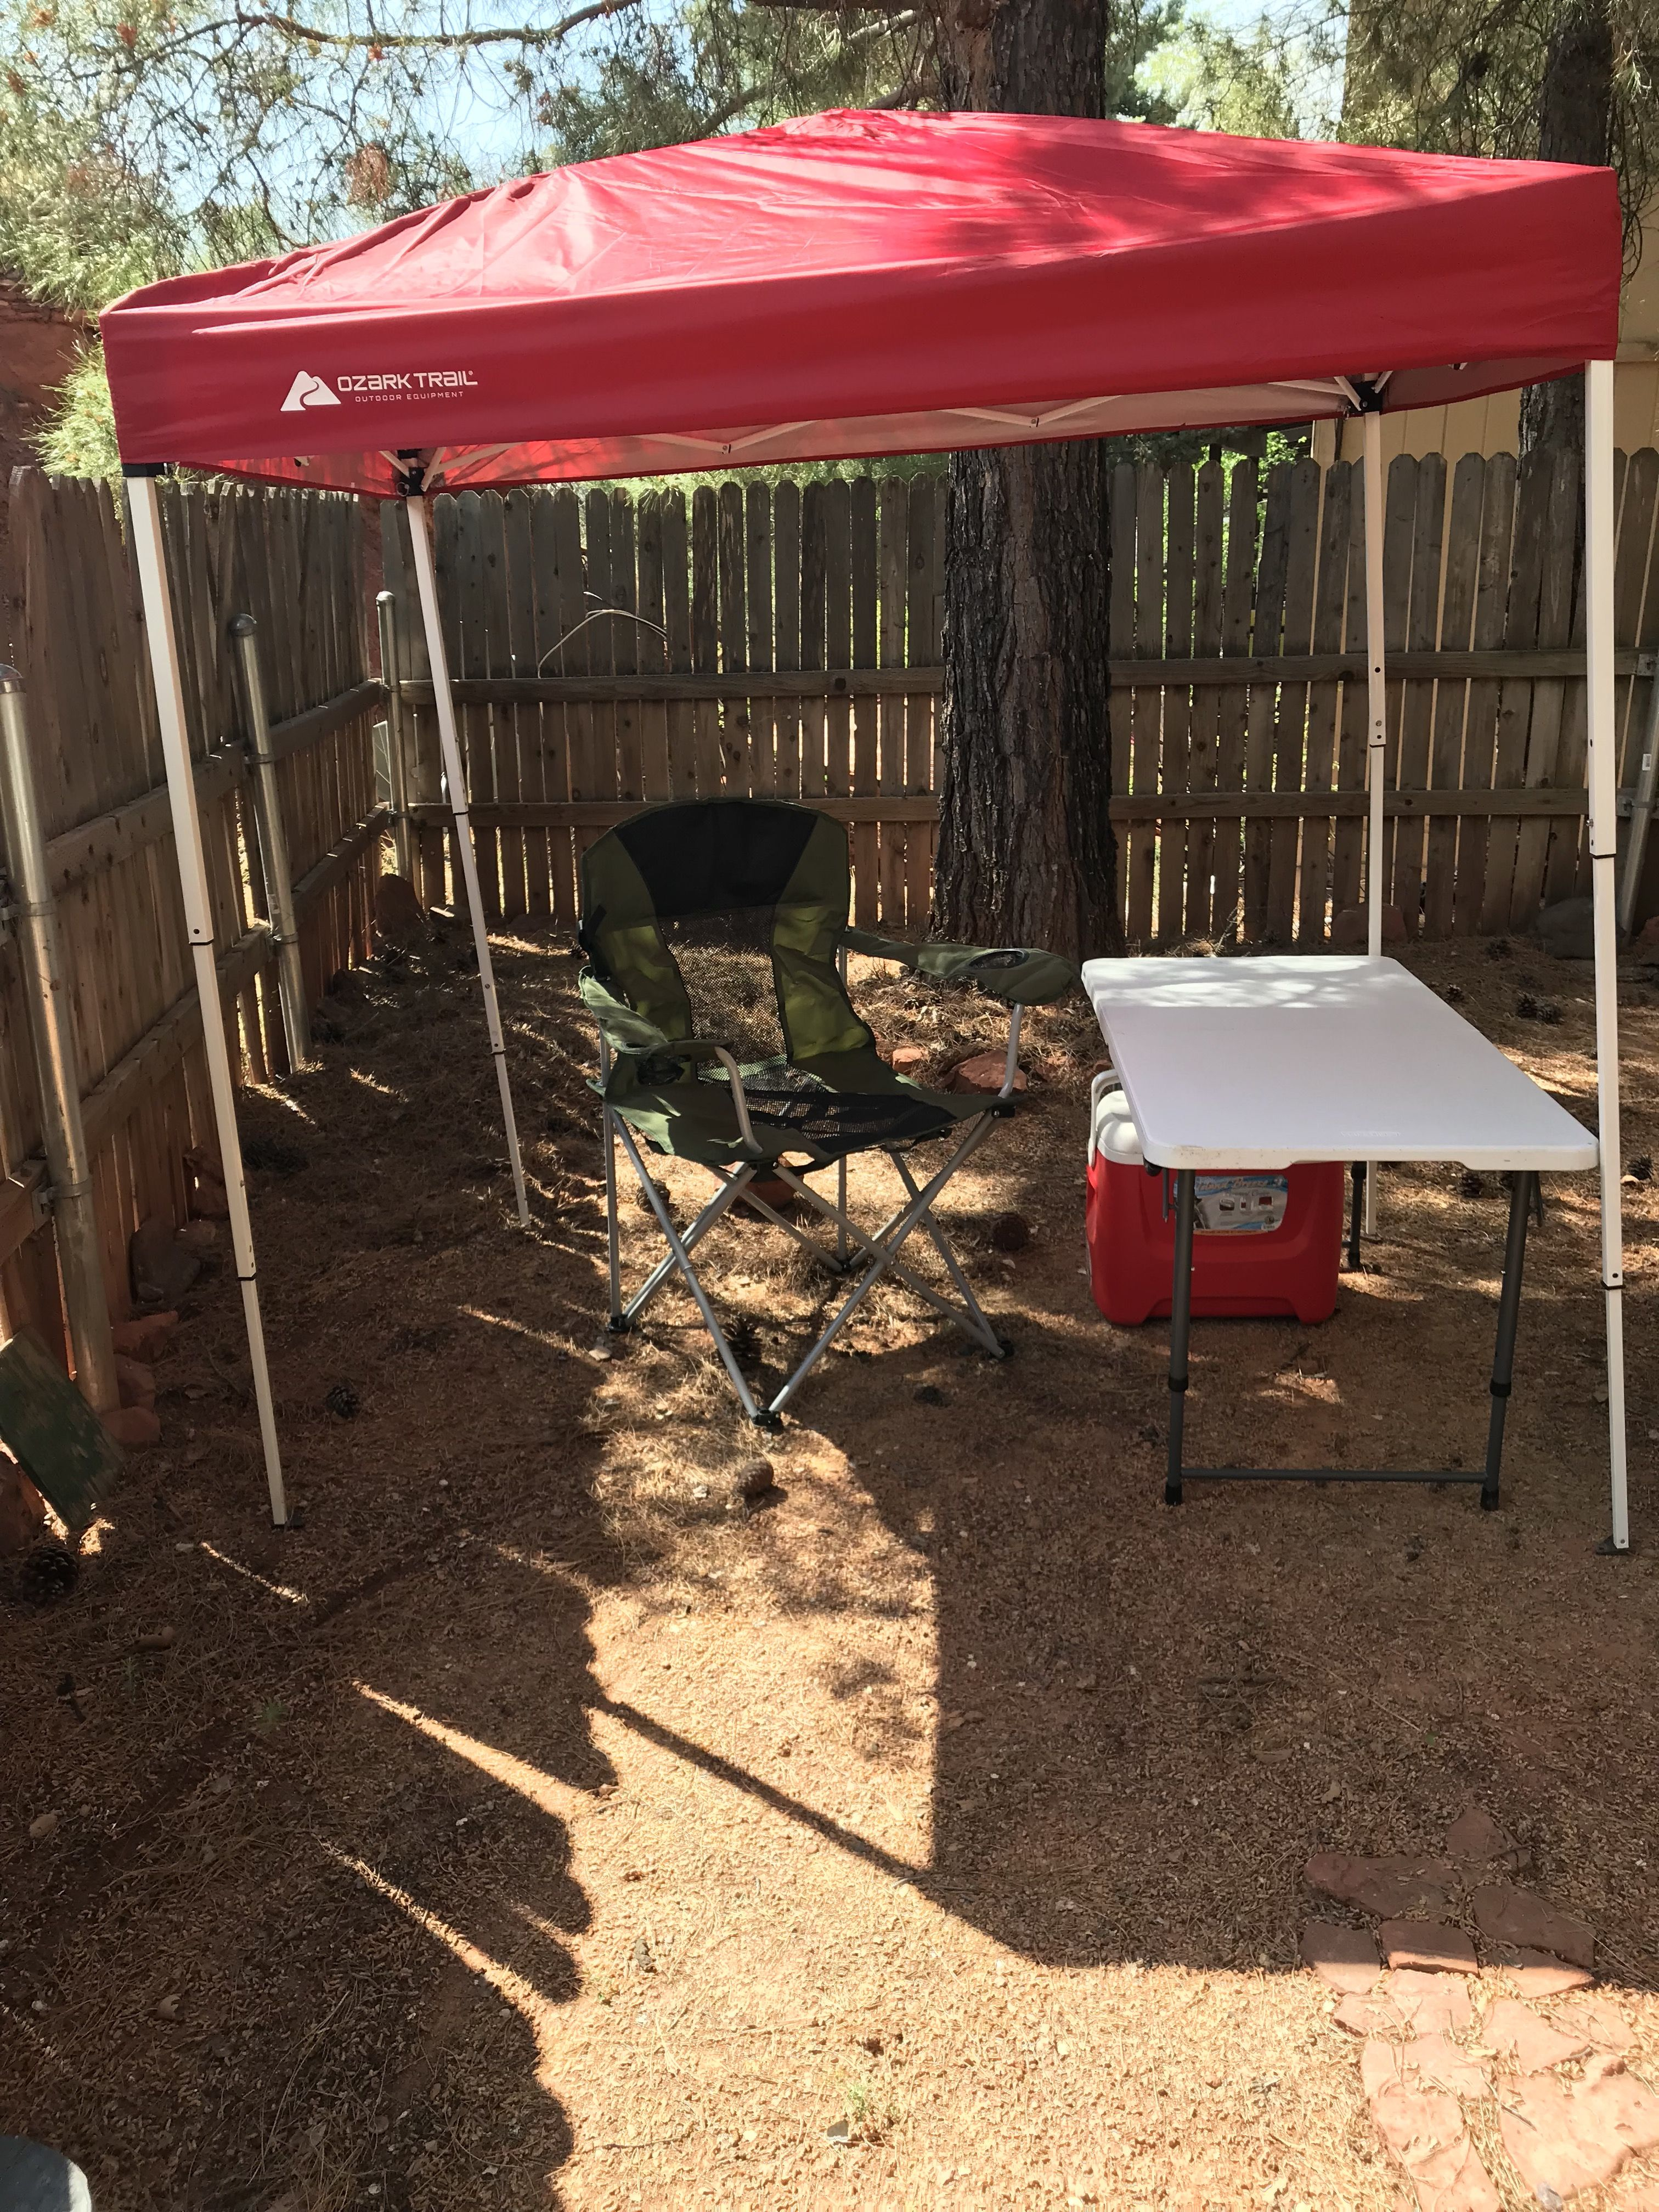 also bought an ozark trails folding camp chair and a lifetime 4 x 2